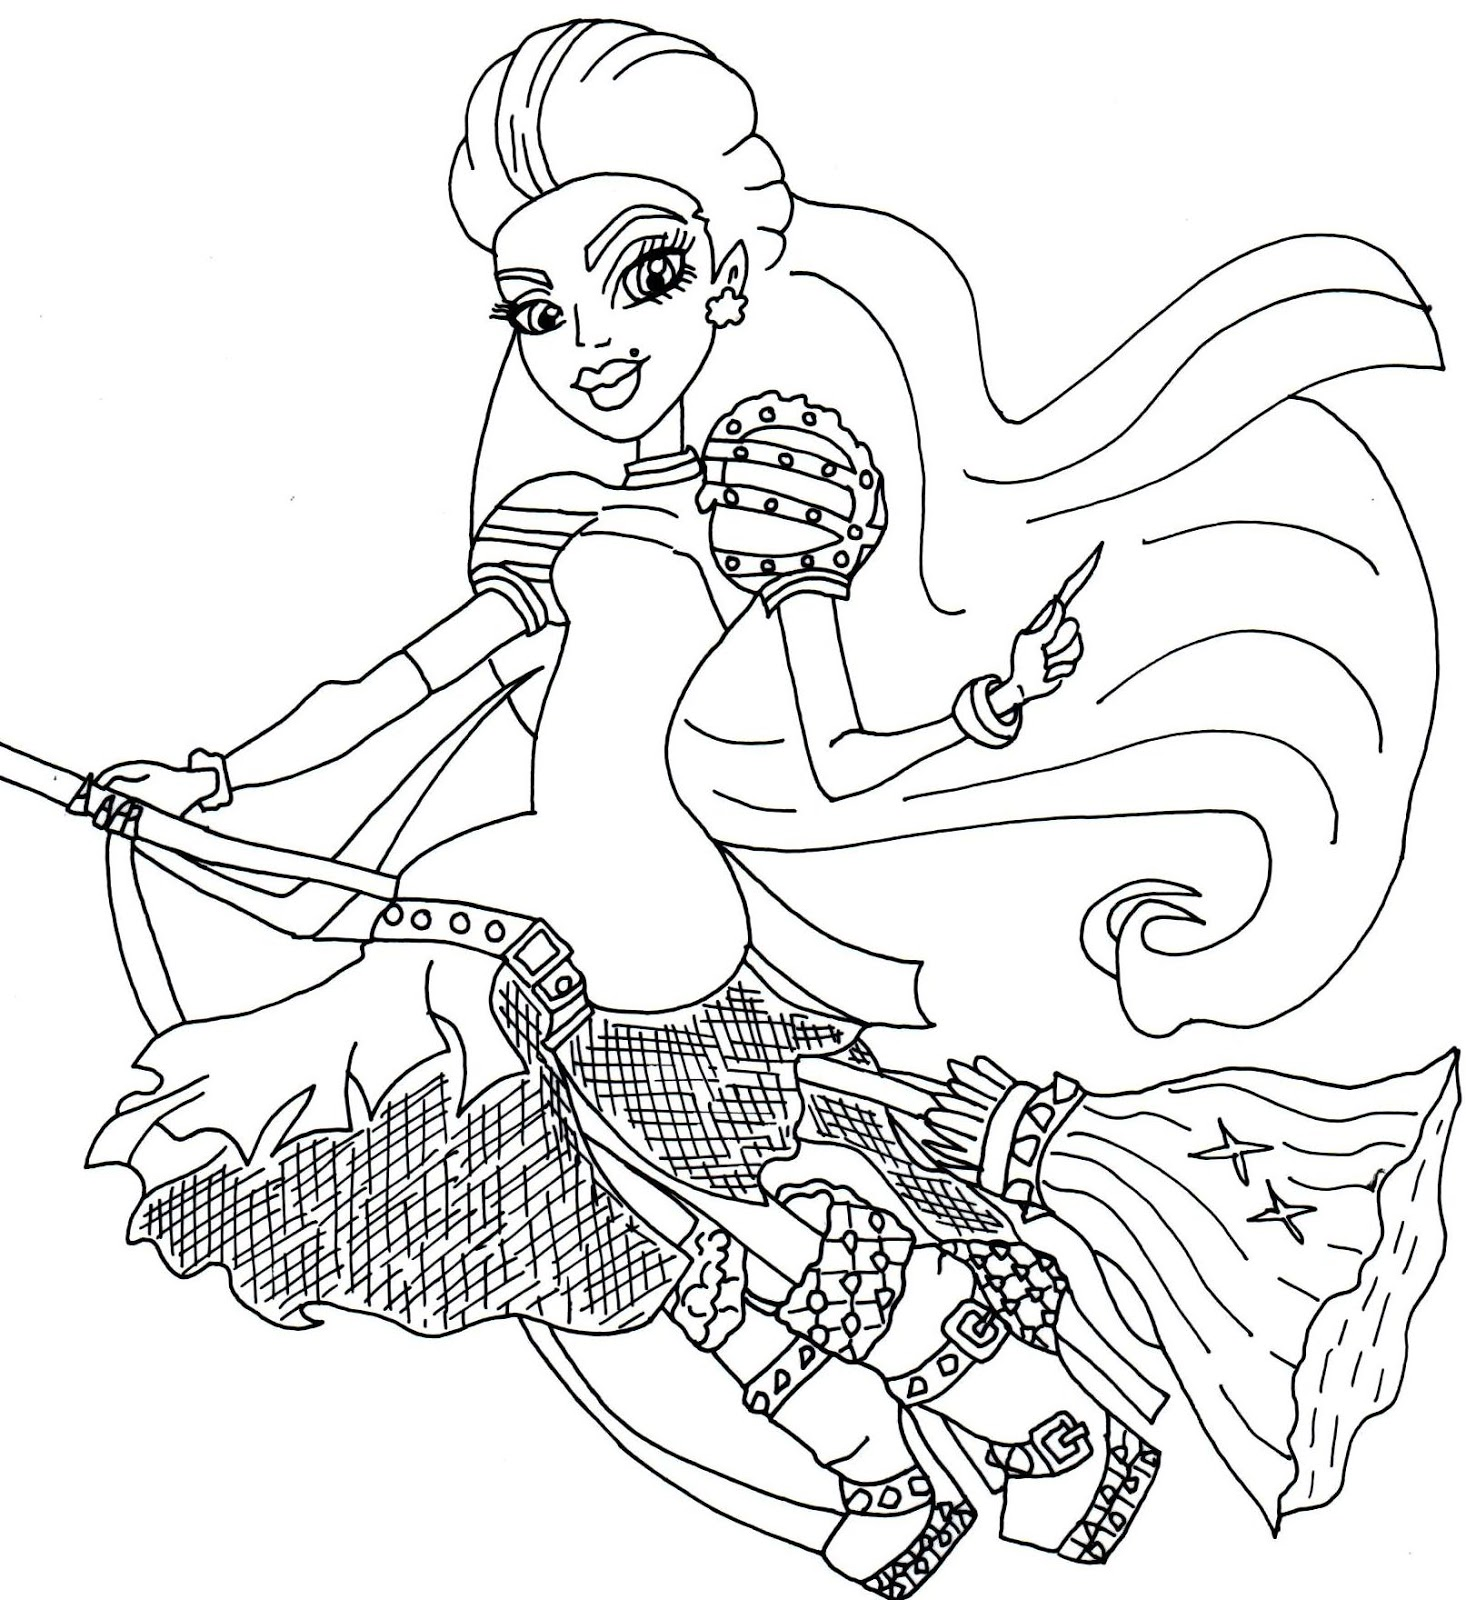 Adult Top Free Printable Monster High Coloring Pages Gallery Images beauty free printable monster high coloring pages casta fierce page gallery images